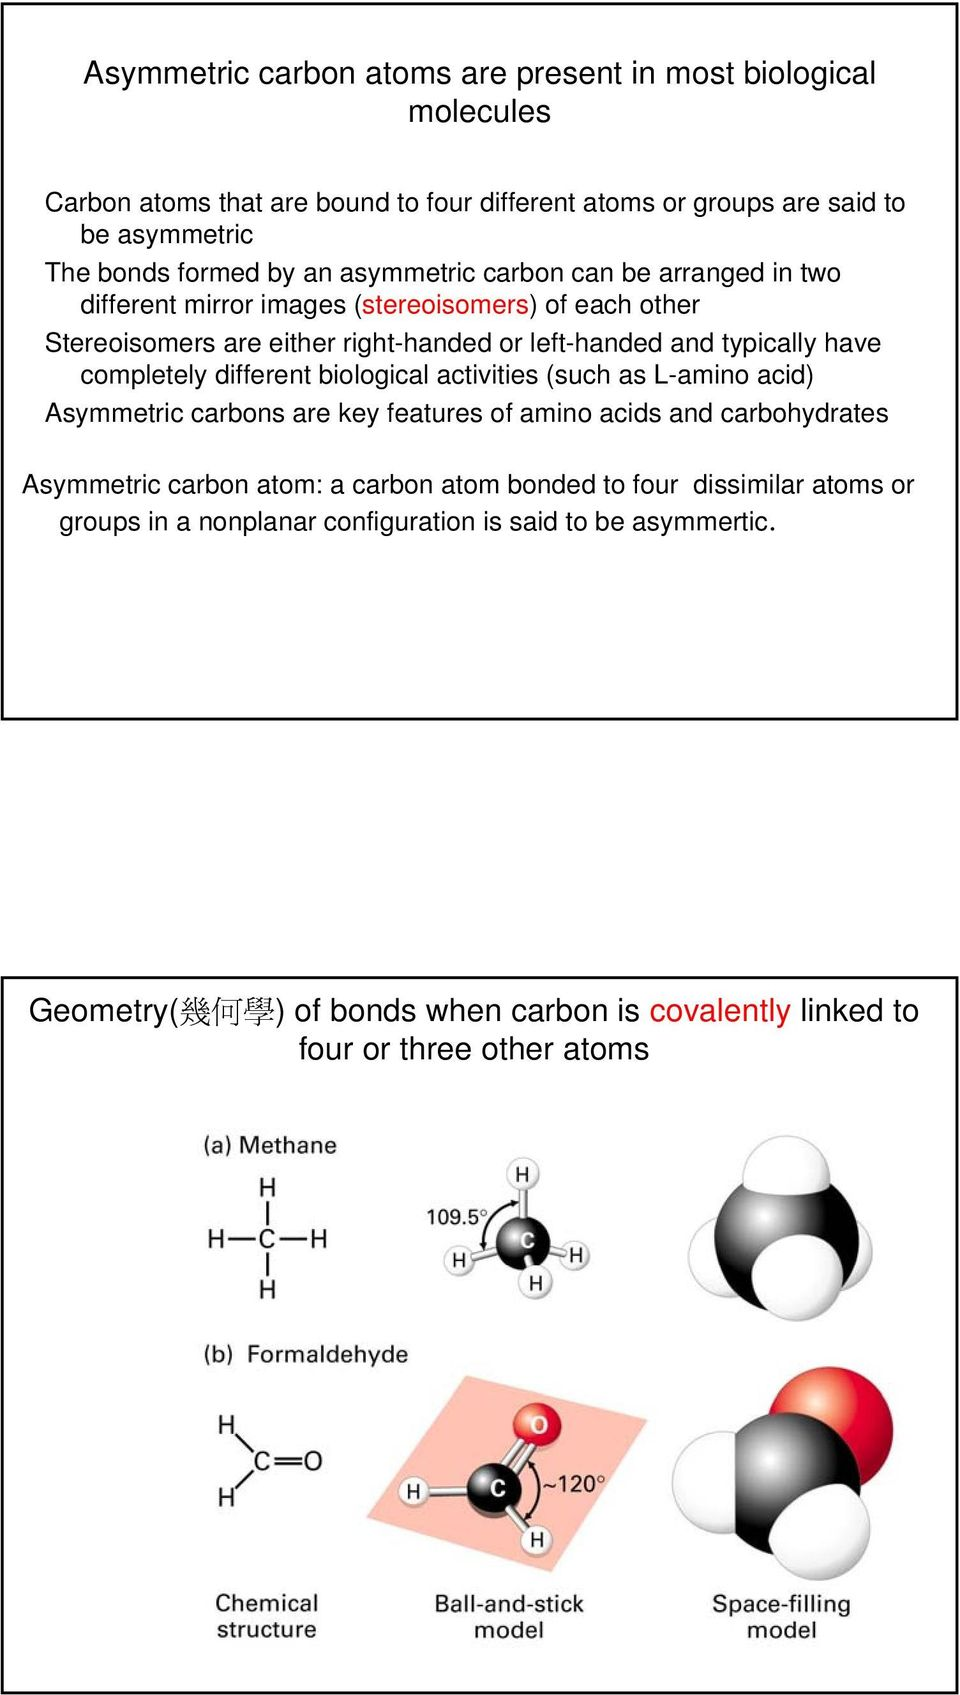 completely different biological activities (such as L-amino acid) Asymmetric carbons are key features of amino acids and carbohydrates Asymmetric carbon atom: a carbon atom